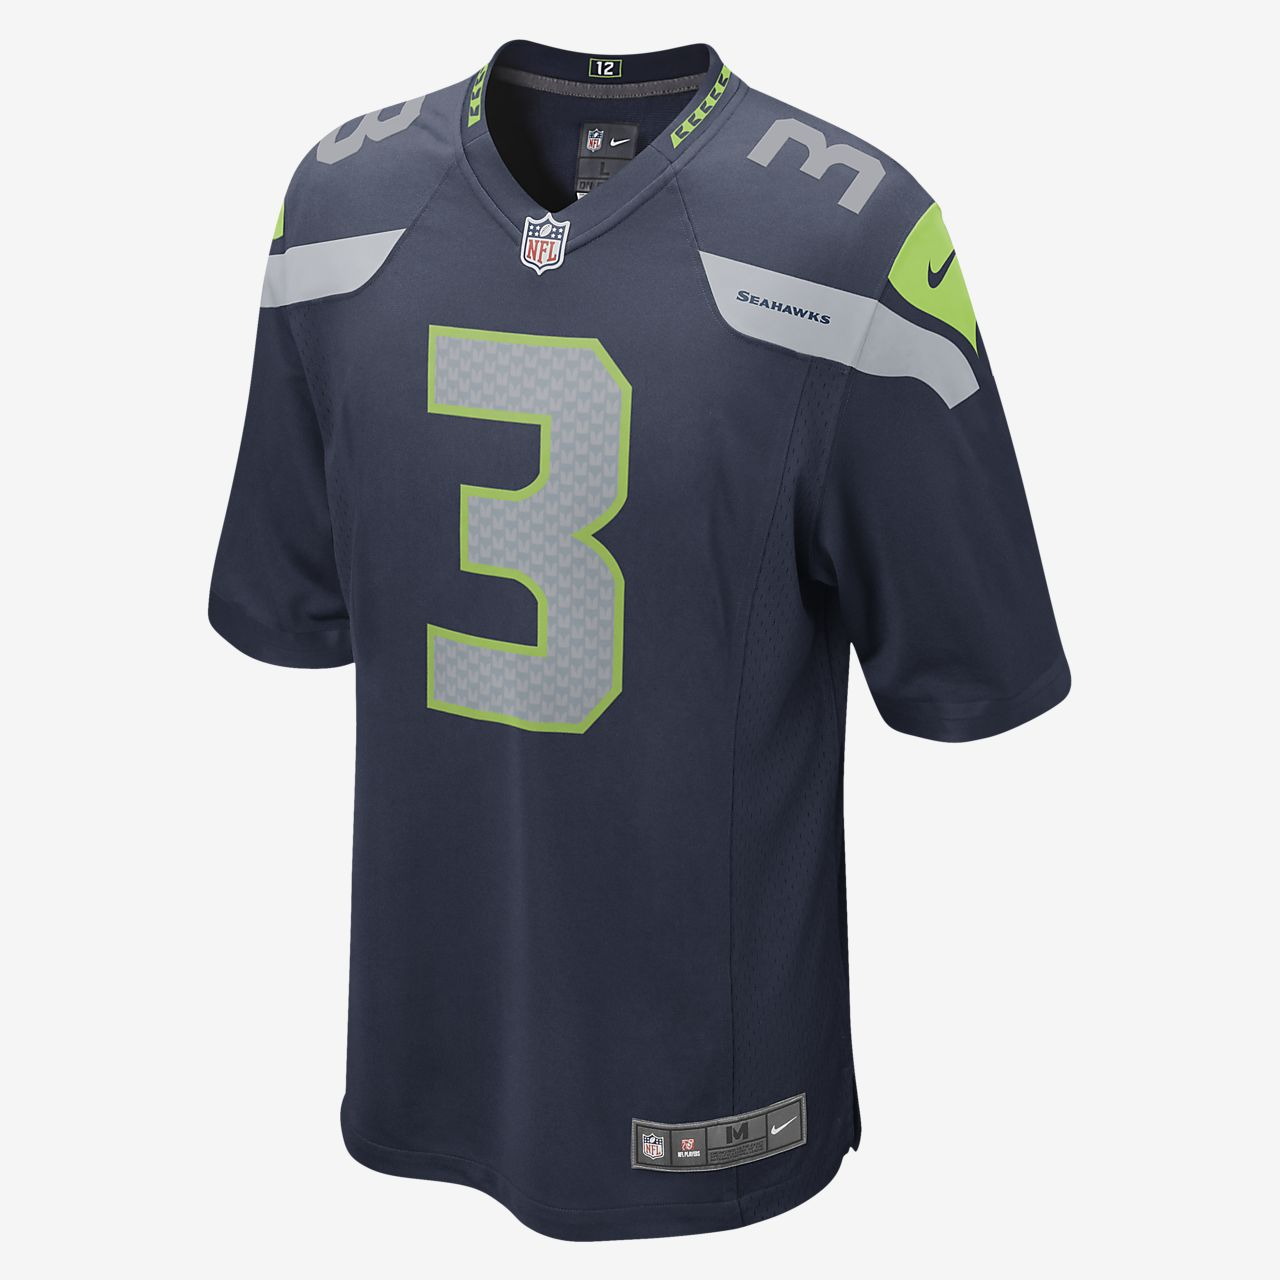 Para Americano De Local Los Seattle Wilson Camiseta Hombre Seahawksrussell Fútbol Nfl A35R4qjL